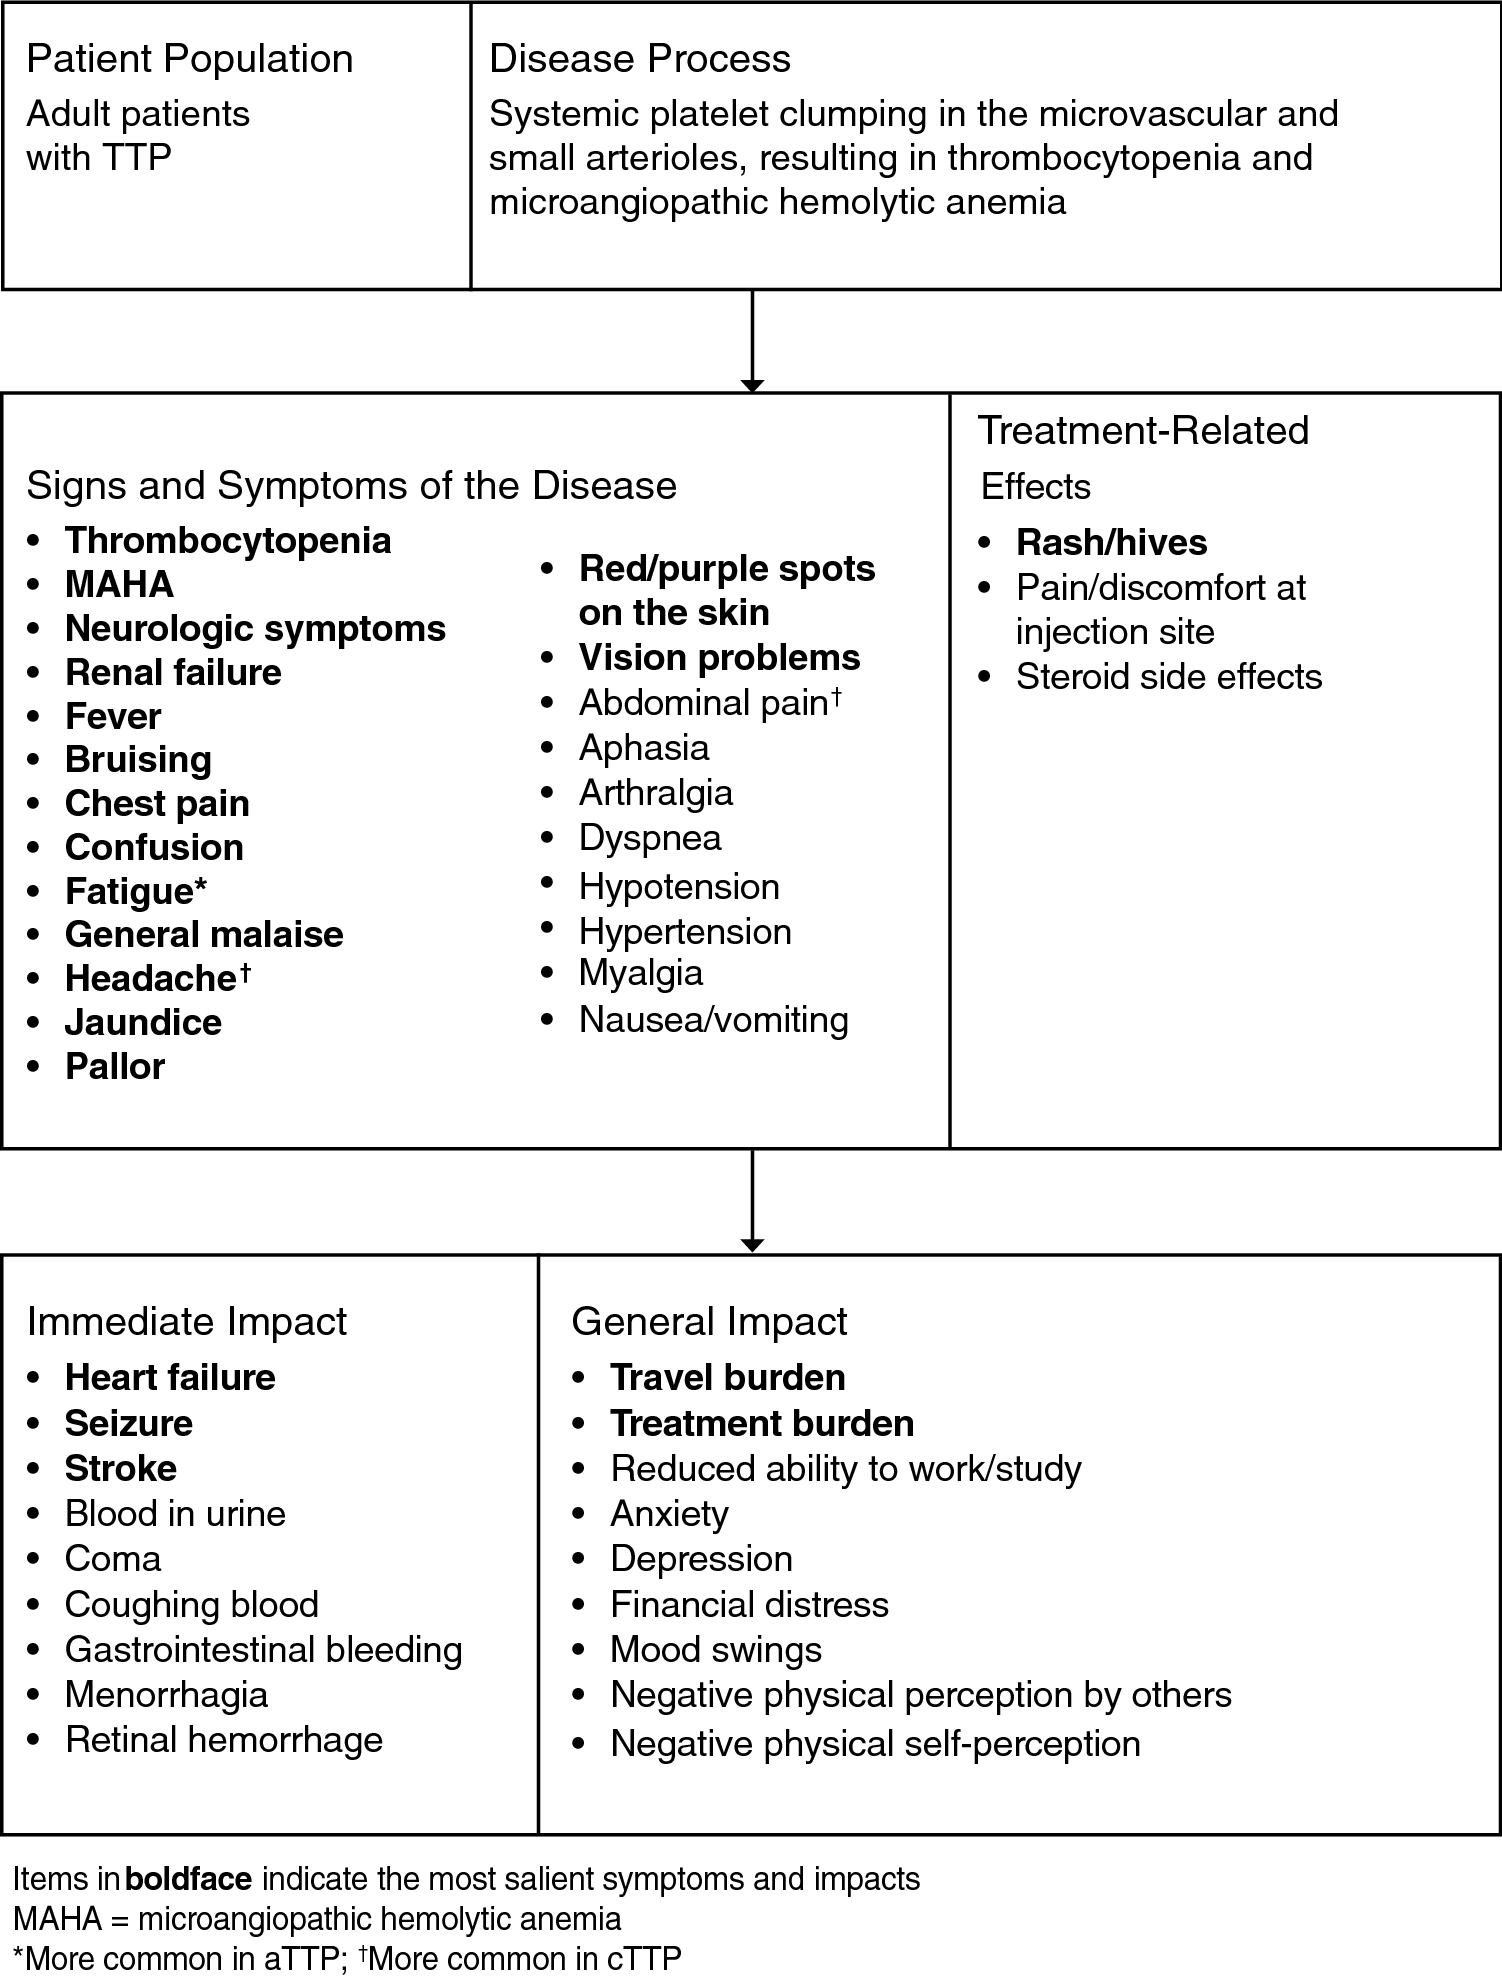 Patient Experience with Congenital (Hereditary) Thrombotic